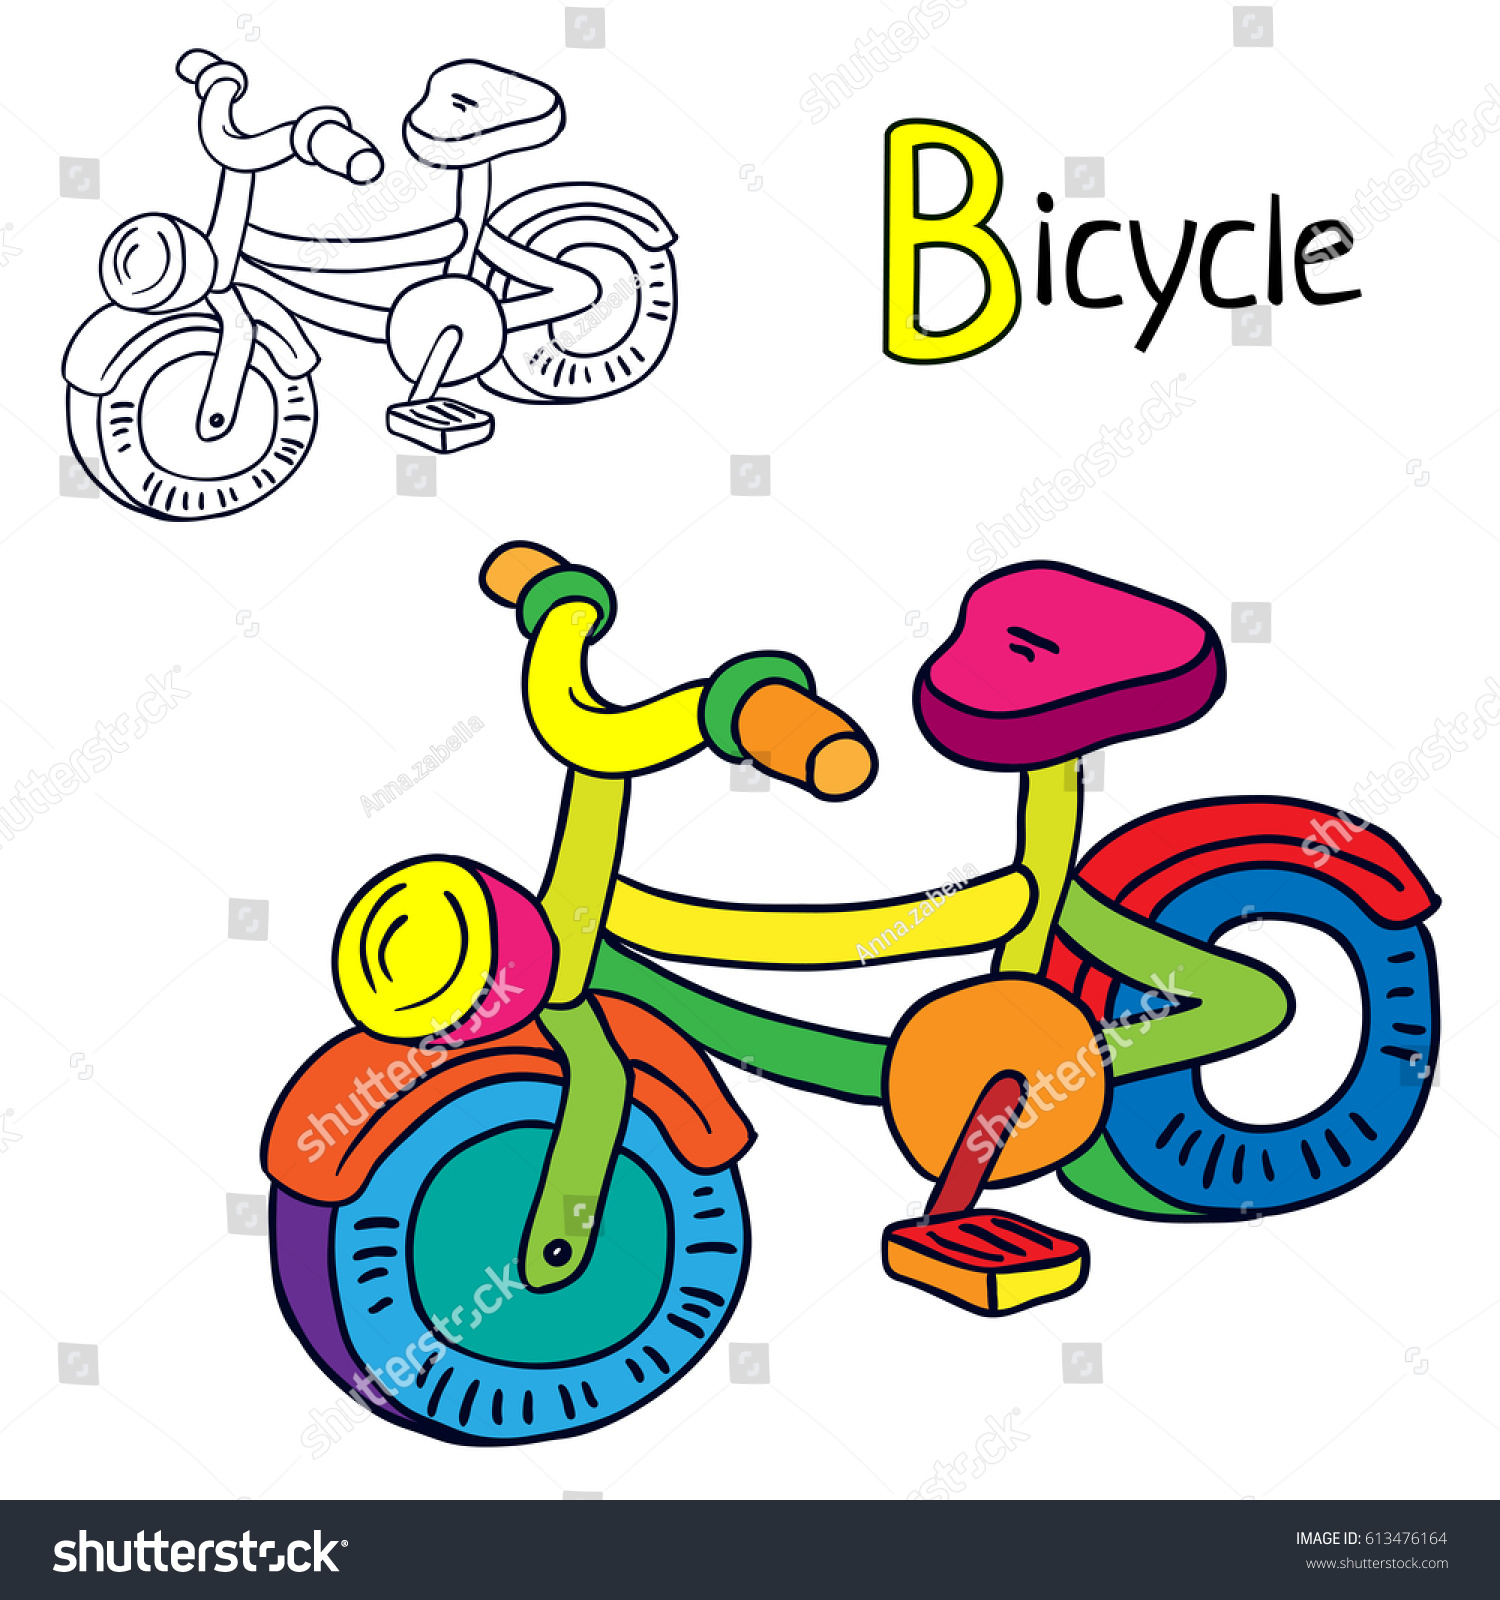 bicycle coloring book page cartoon vector illustration - Bicycle Coloring Book